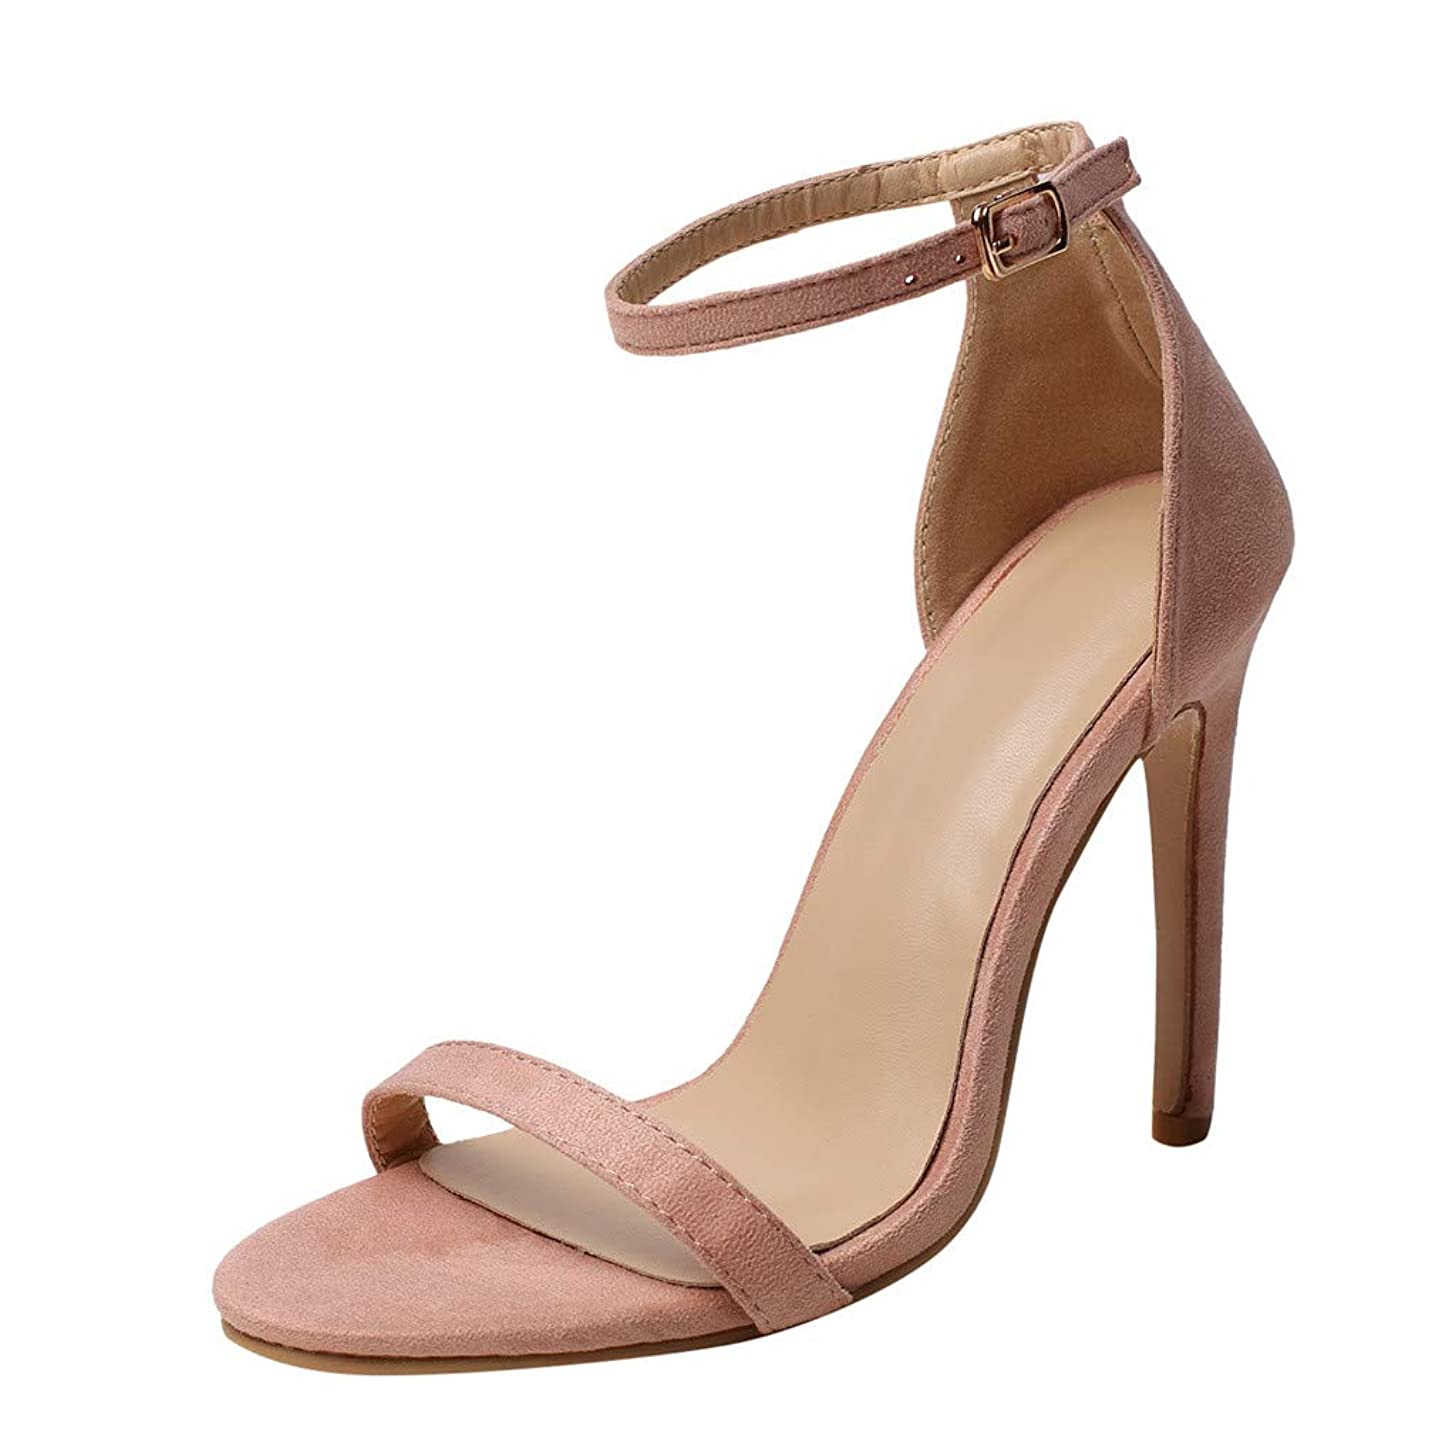 Claystyle Women's Stiletto High Heel Ankle Strap Dress Sandals Open Toe Strappy Heels Wedding Party Prom Shoes